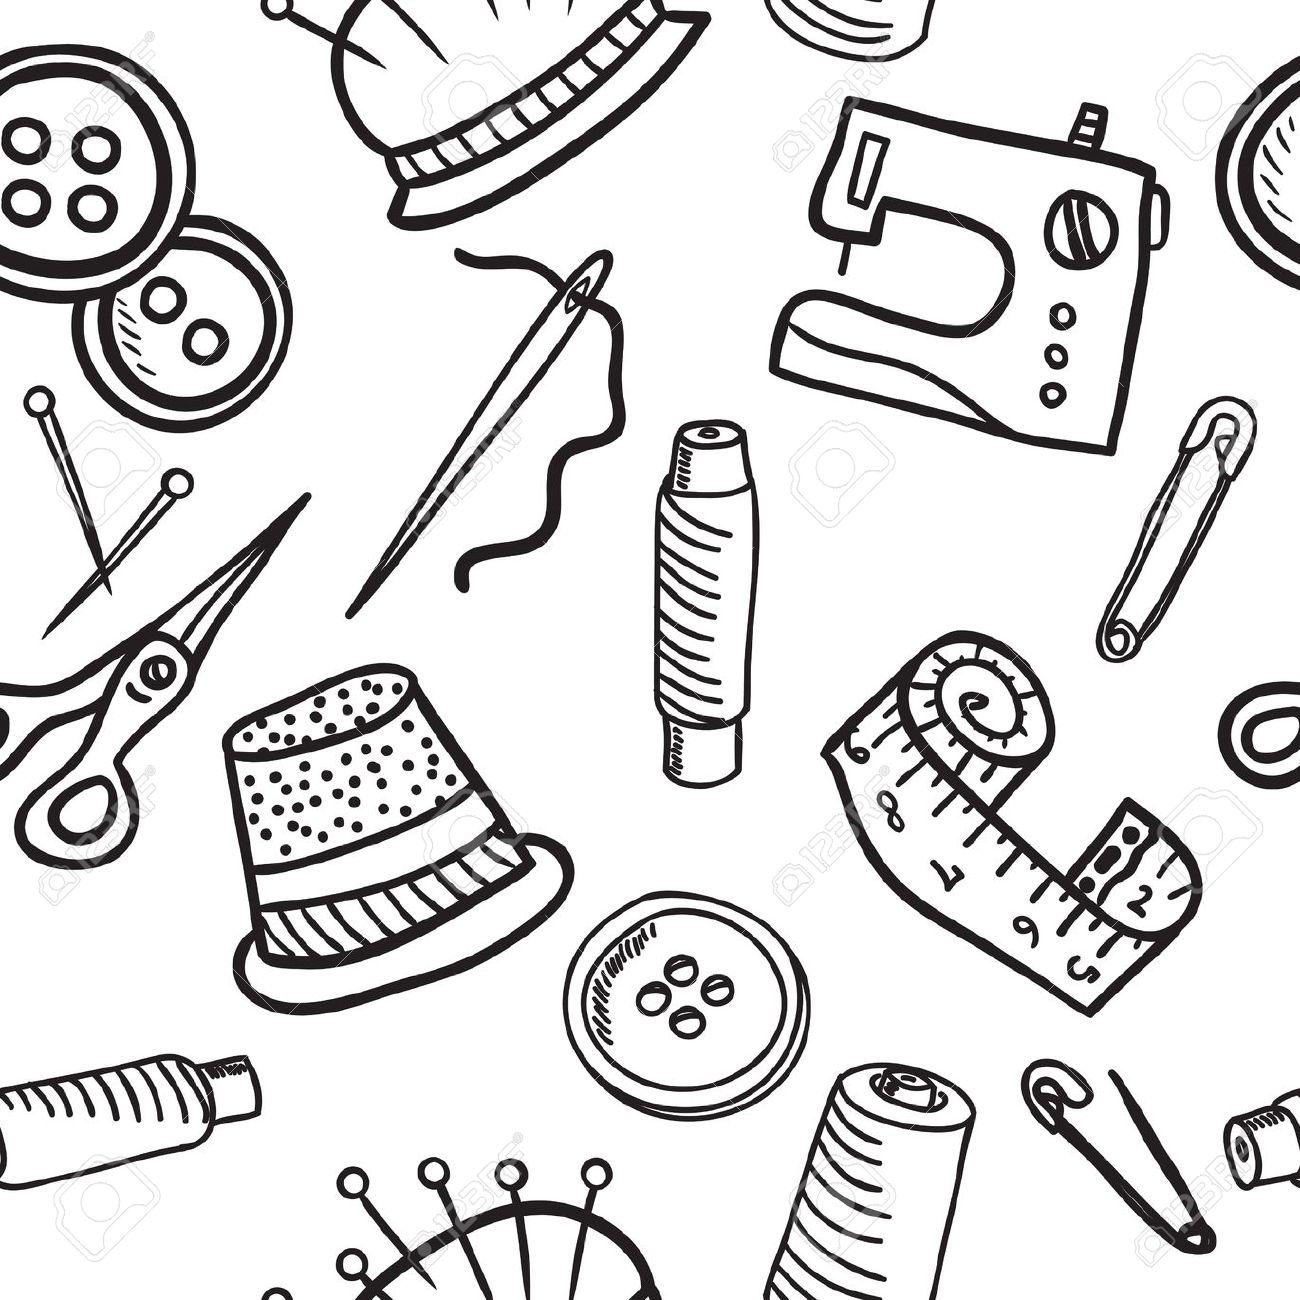 Sewing And Accessories Seamless Pattern.